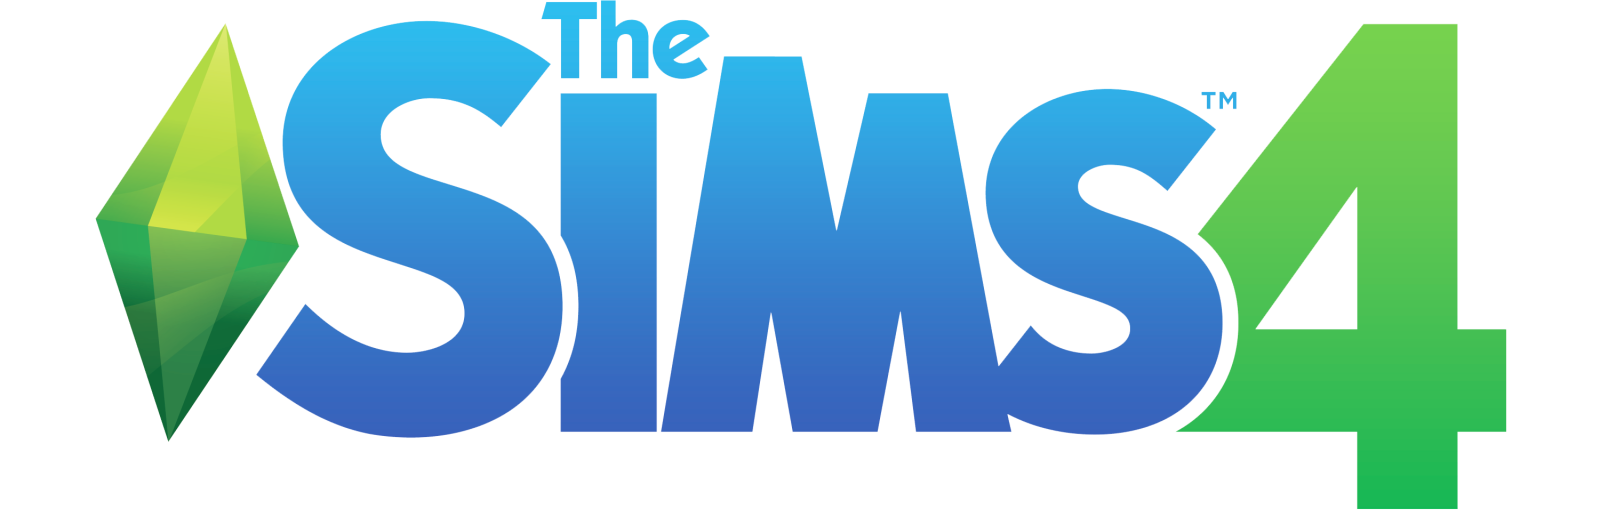 the_sims_4_logo.png